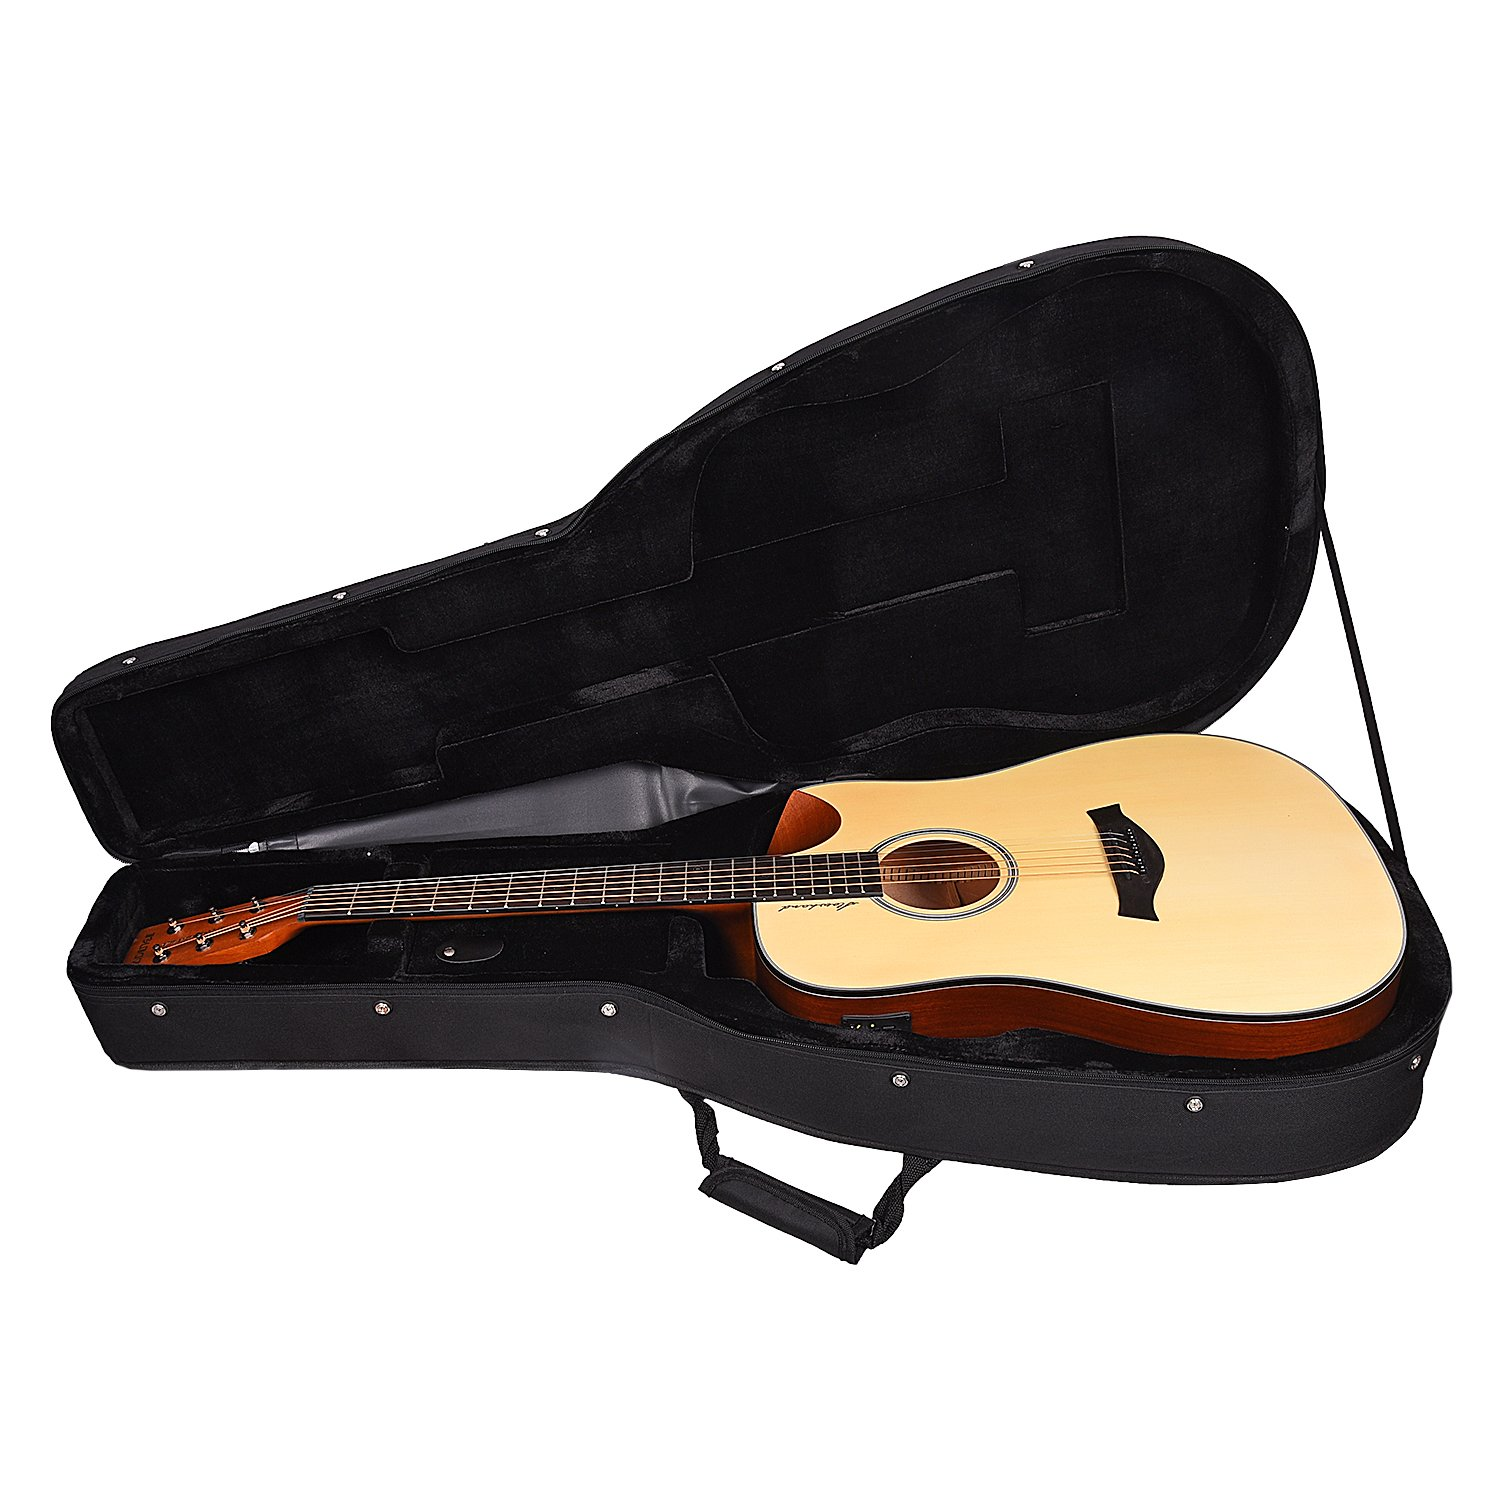 Kadence Slowhand Series Premium Acoustic Guitar, Spruce Top with Hard Case SH-01